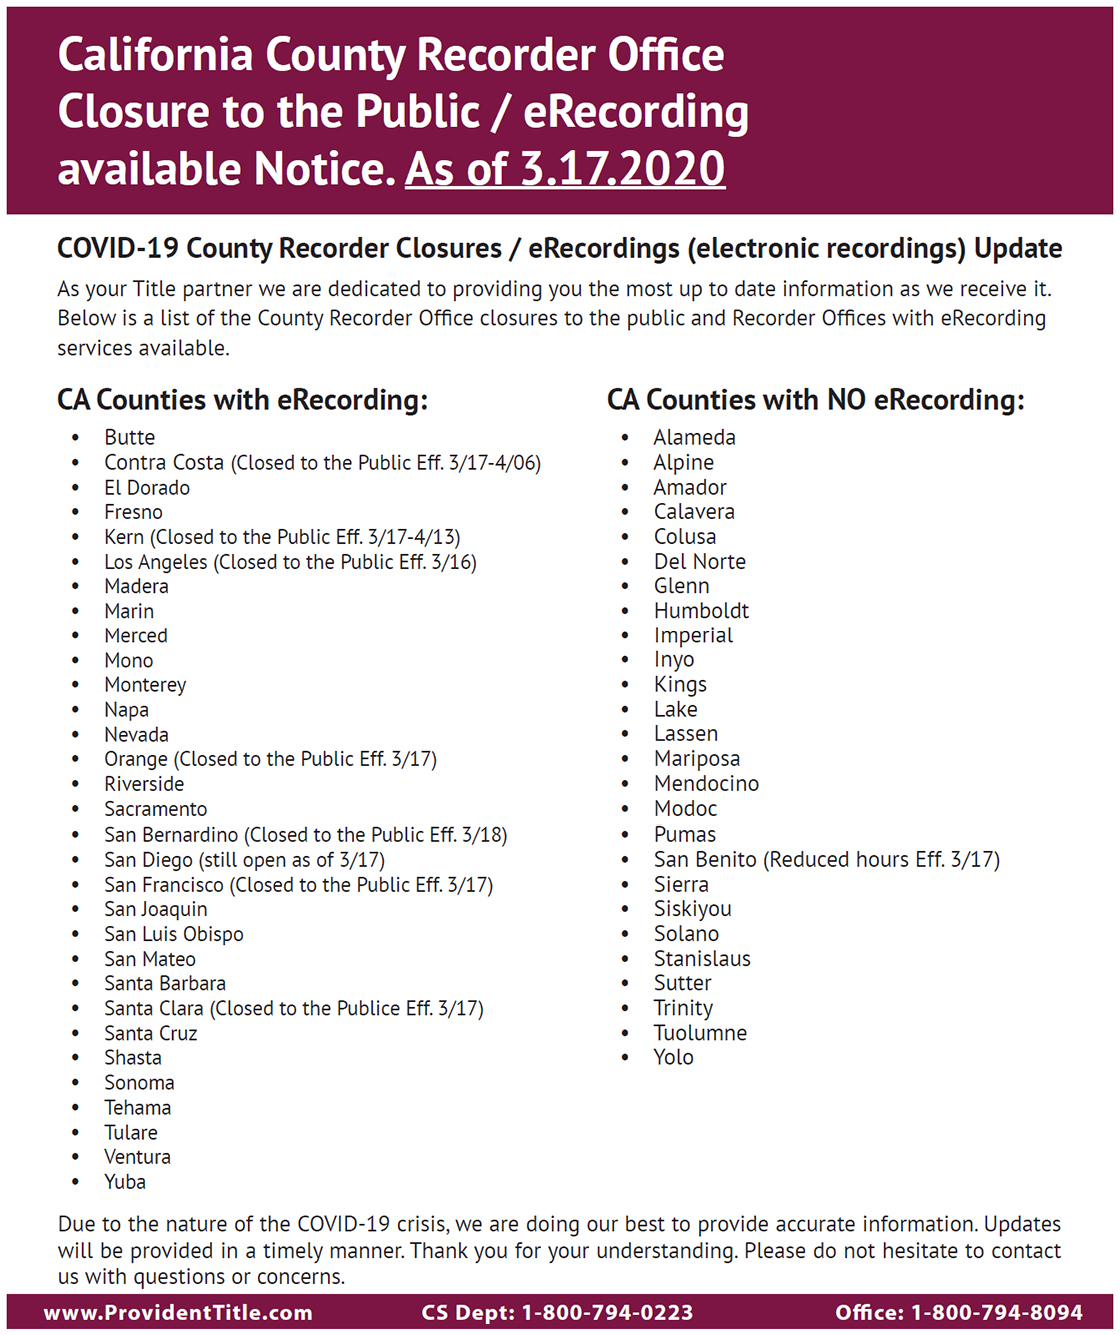 california country recorder office closure to the public/ erecording available notice. as of march 17, 2020